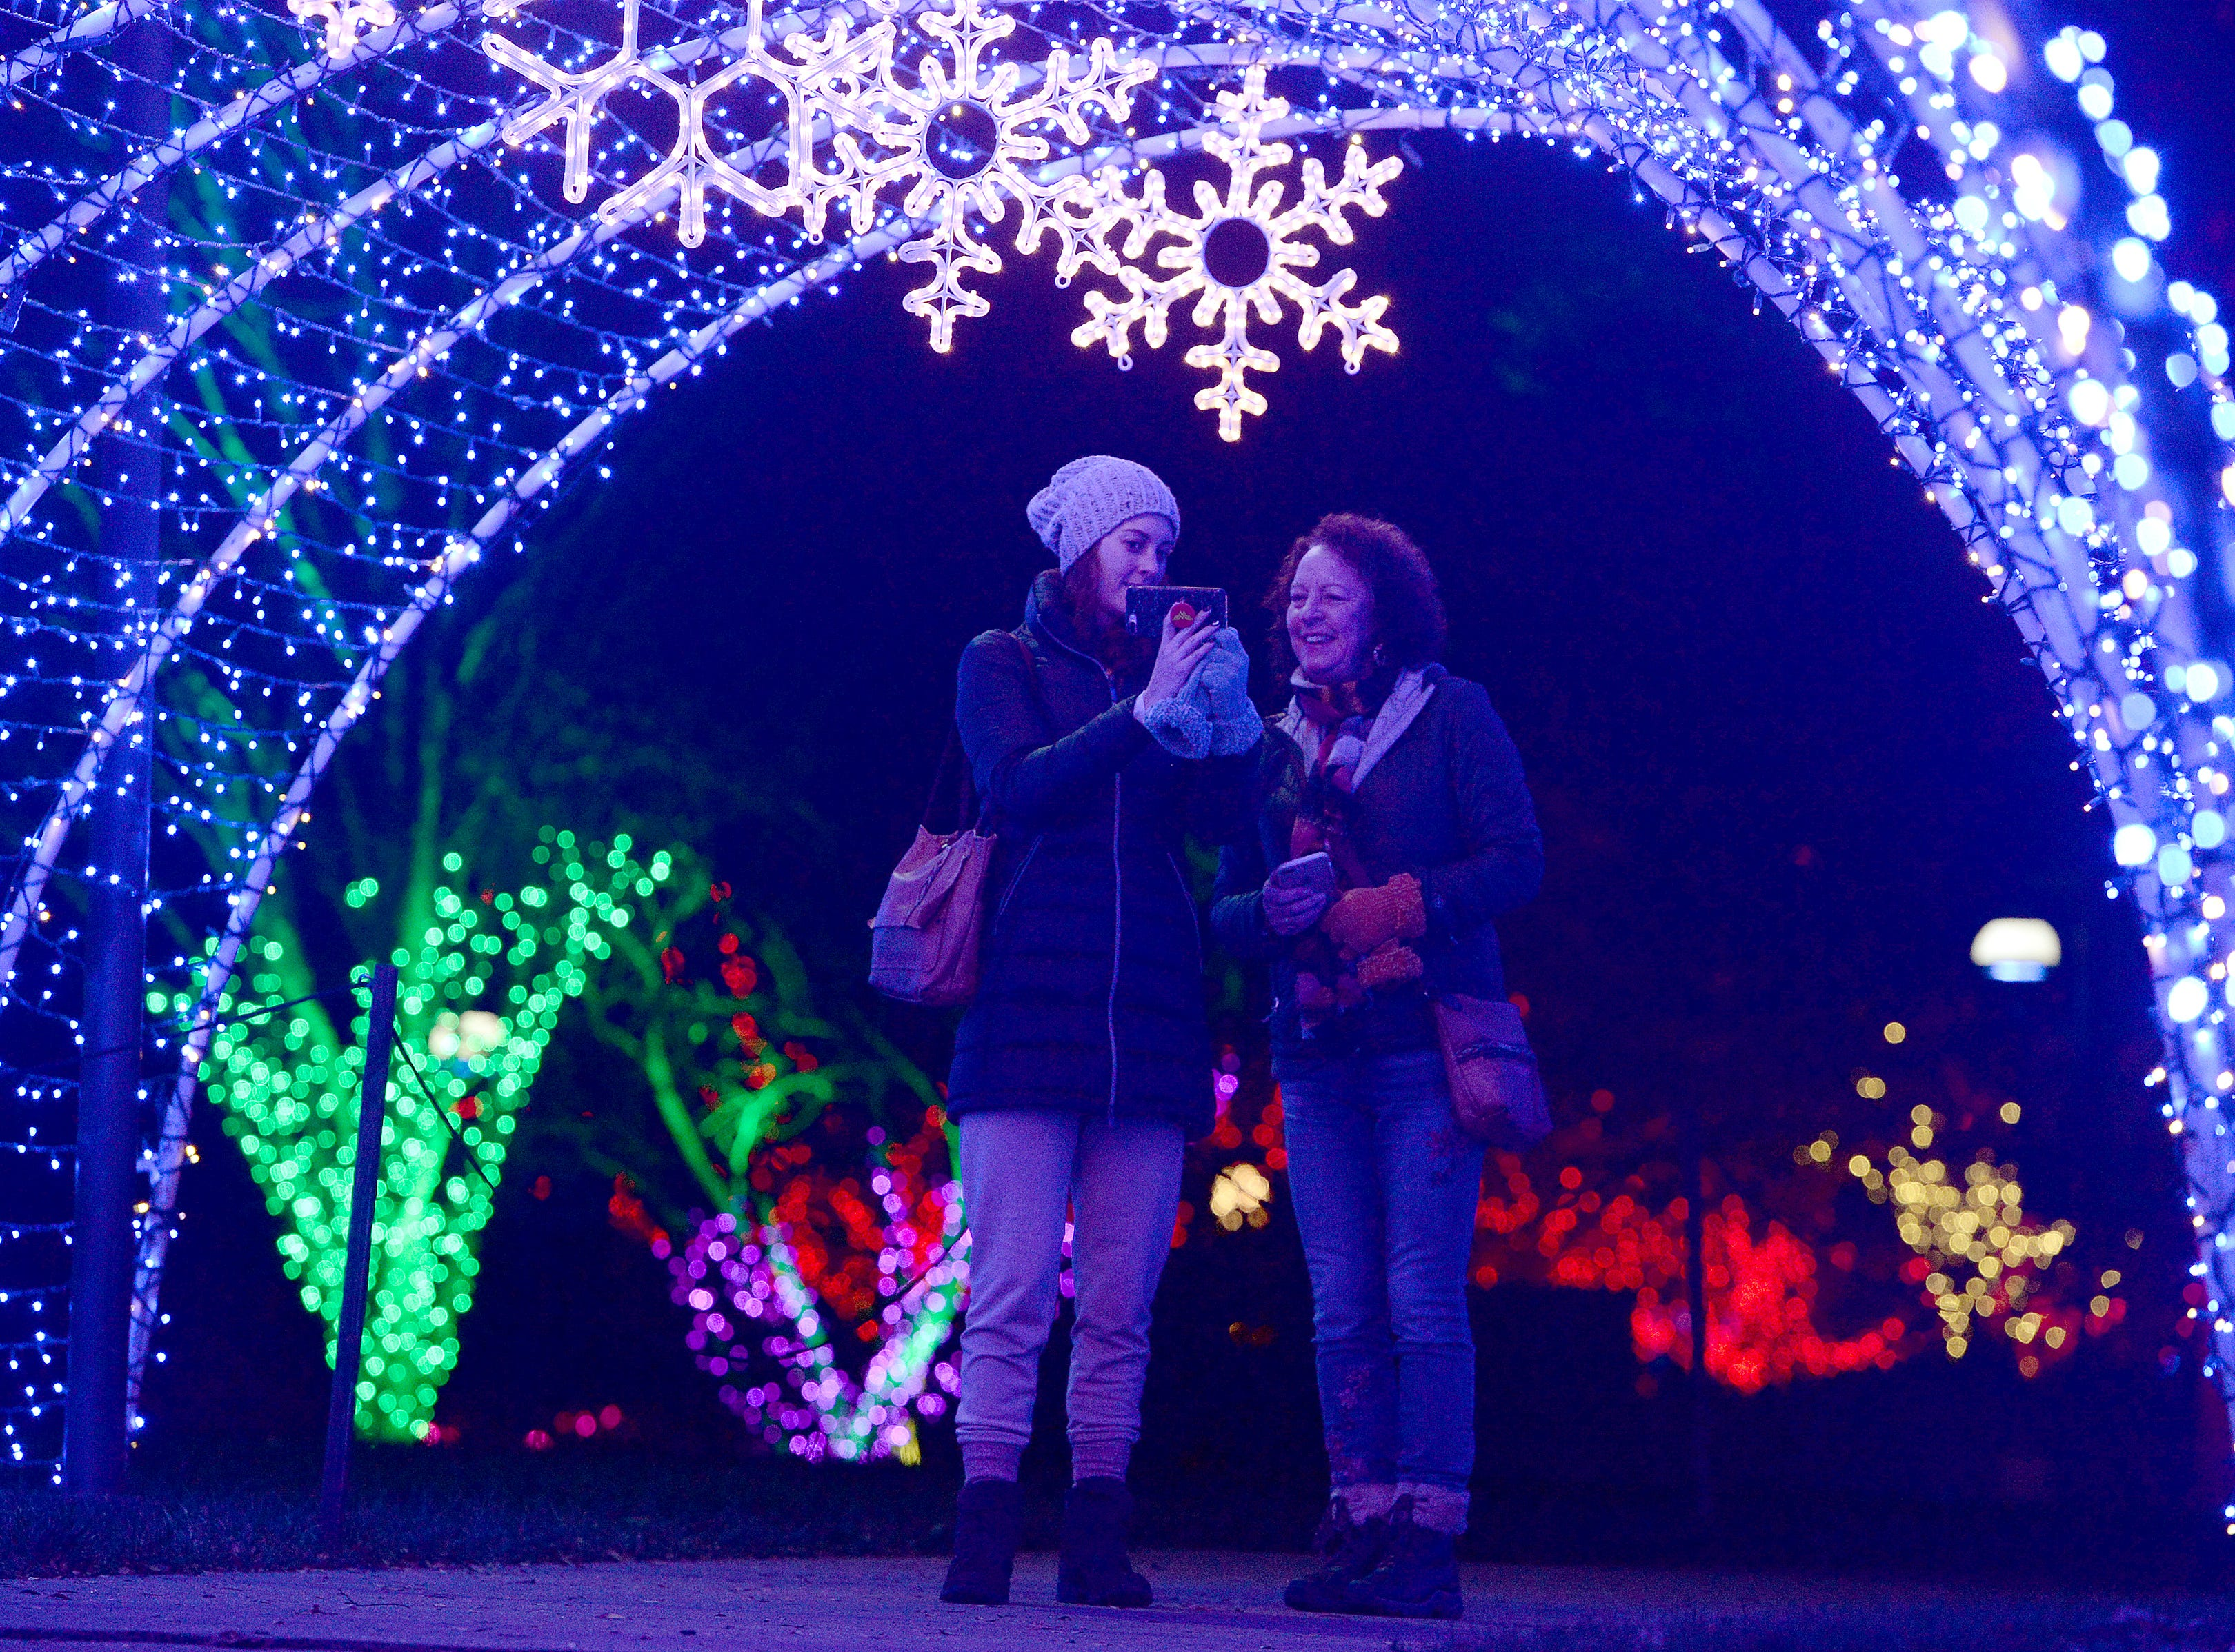 Jessica Ratliff Hicks, left, and her mother, Sharon Ratliff, of Rocky Mount, and Bristol, Tenn. respectively, look at Hicks' phone as they walk through a tunnel of lights during the Winter Lights show at the North Carolina Arboretum on Nov. 16, 2018. The show runs nightly through the end of the year.